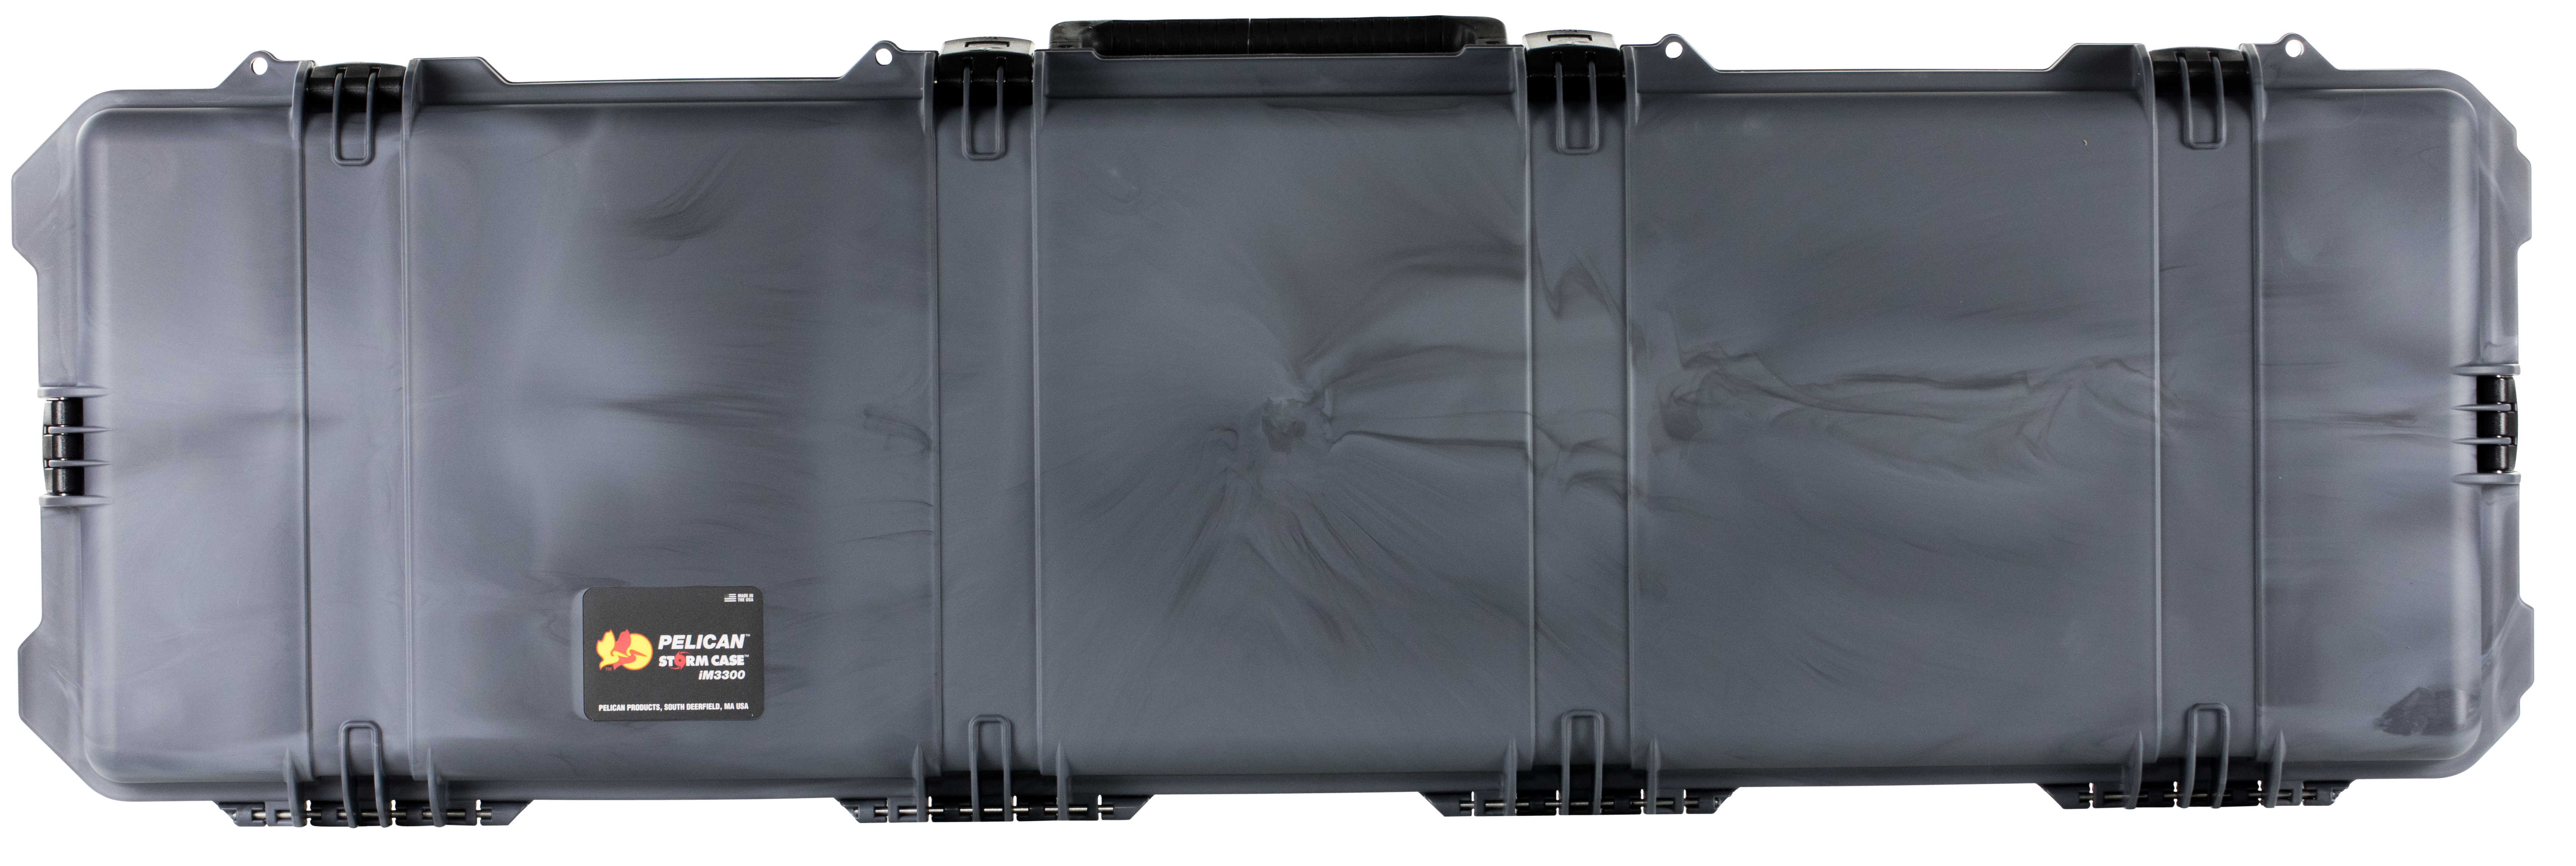 Pelican  Storm Double Rifle Case Strong HPX Resin Smooth 53.8